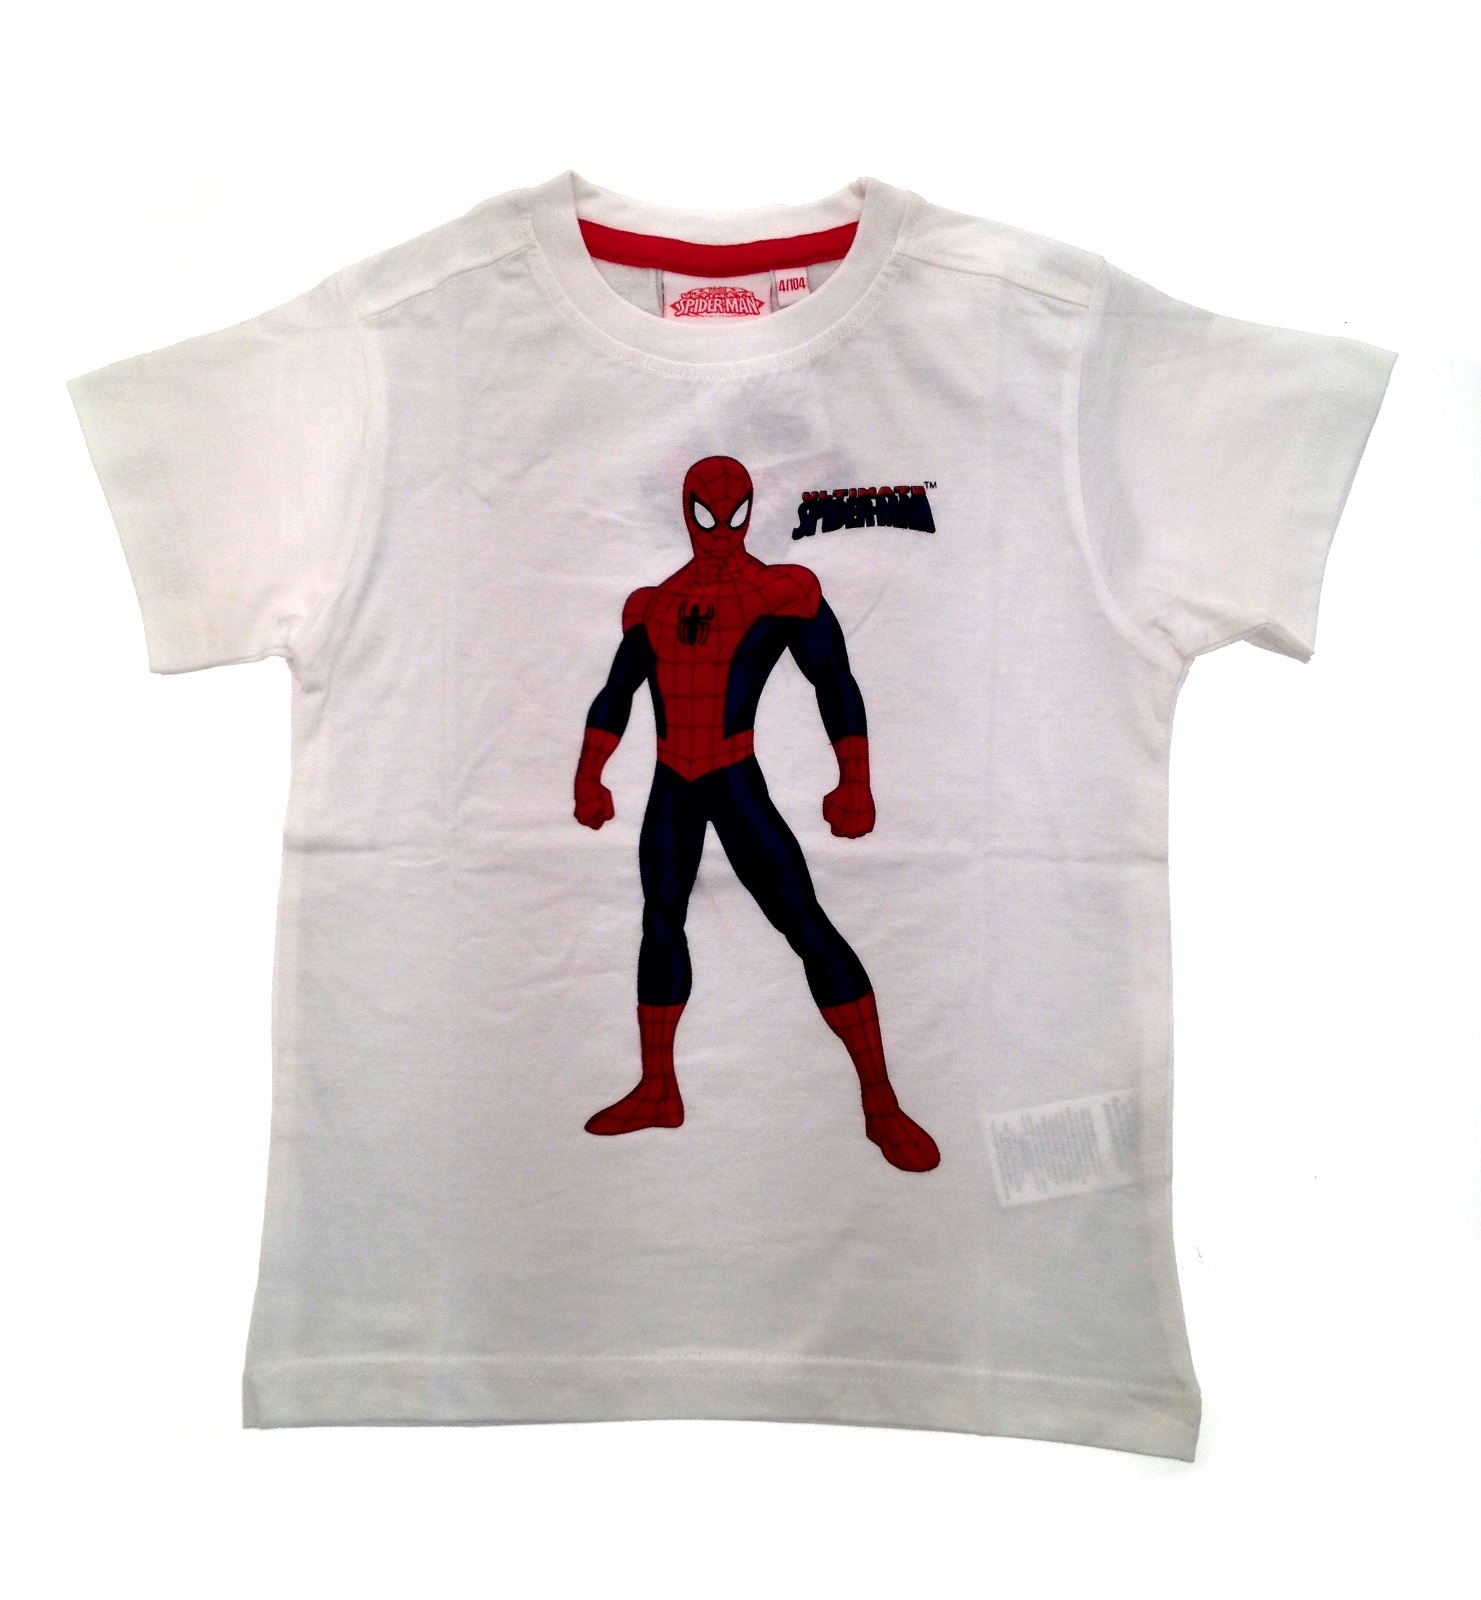 boys short sleeve ultimate spiderman t shirt kids summer top size uk 2 8 years ebay. Black Bedroom Furniture Sets. Home Design Ideas